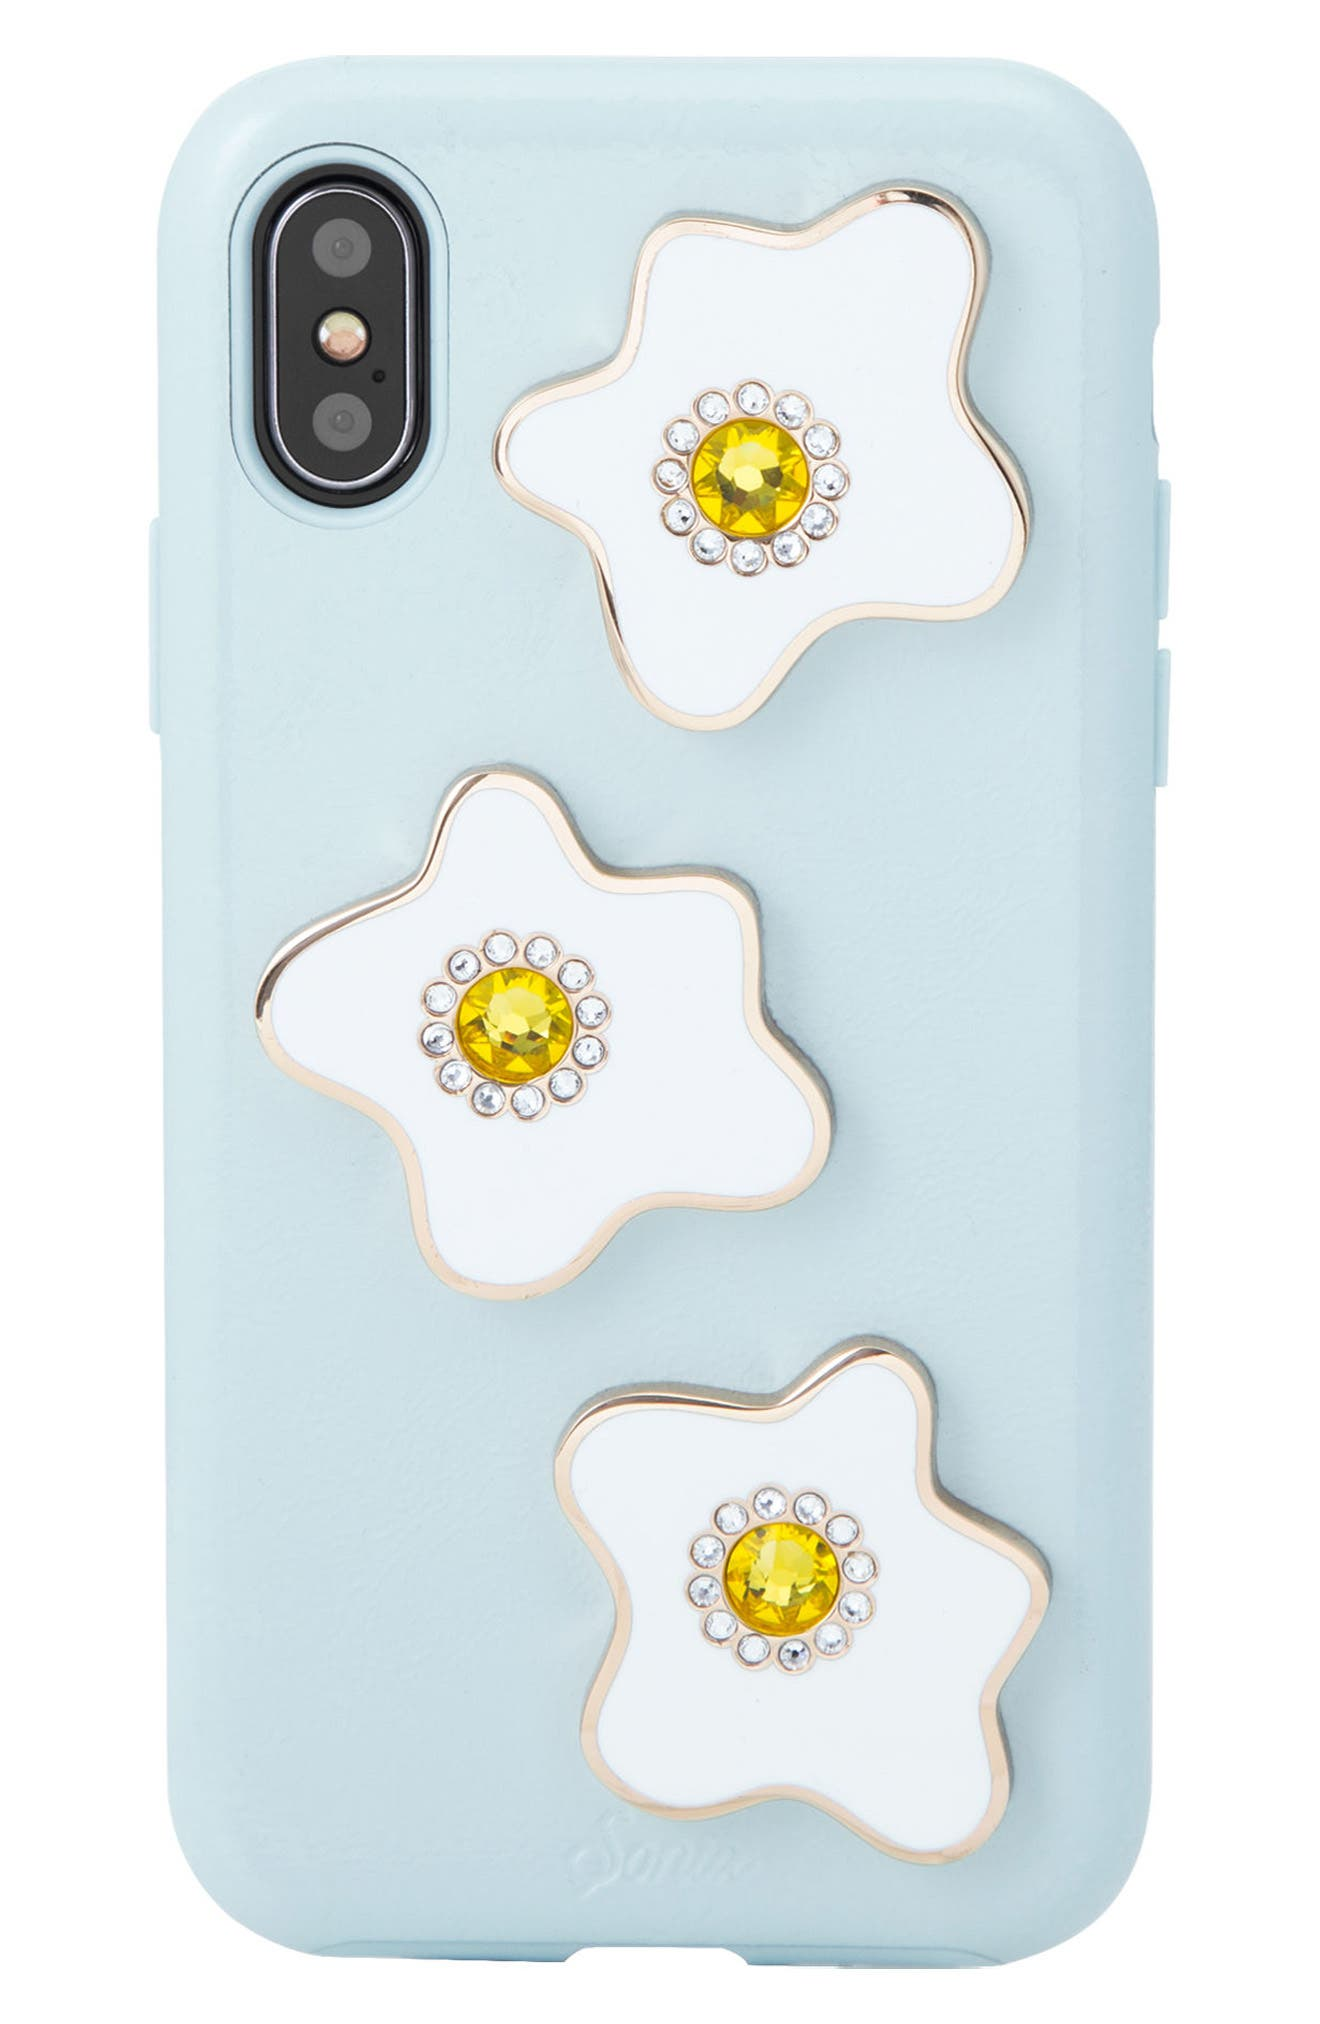 Eggy iPhone X Case,                         Main,                         color, Blue/ White/ Yellow